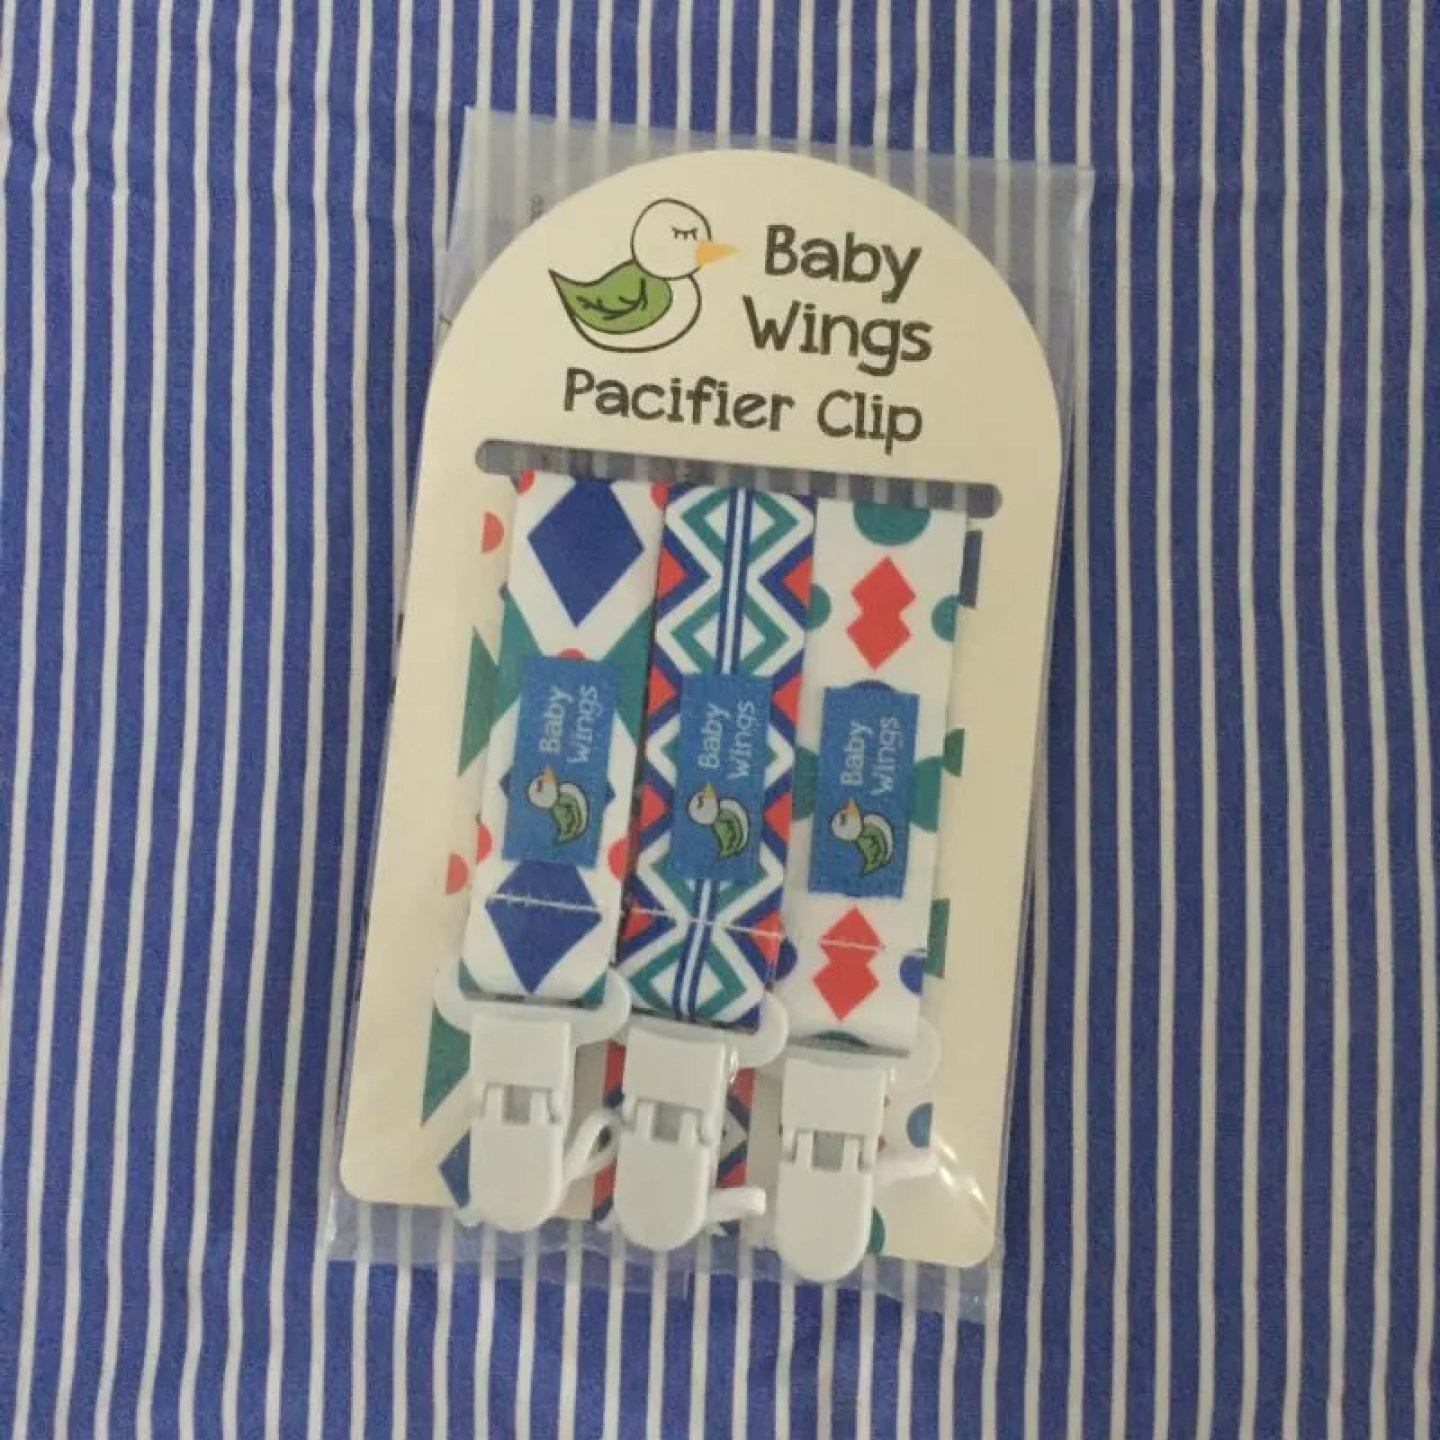 Baby wings dummy clips review. I was excited to receive these baby wings dummy clips to review this week. These universal clips are excellent.